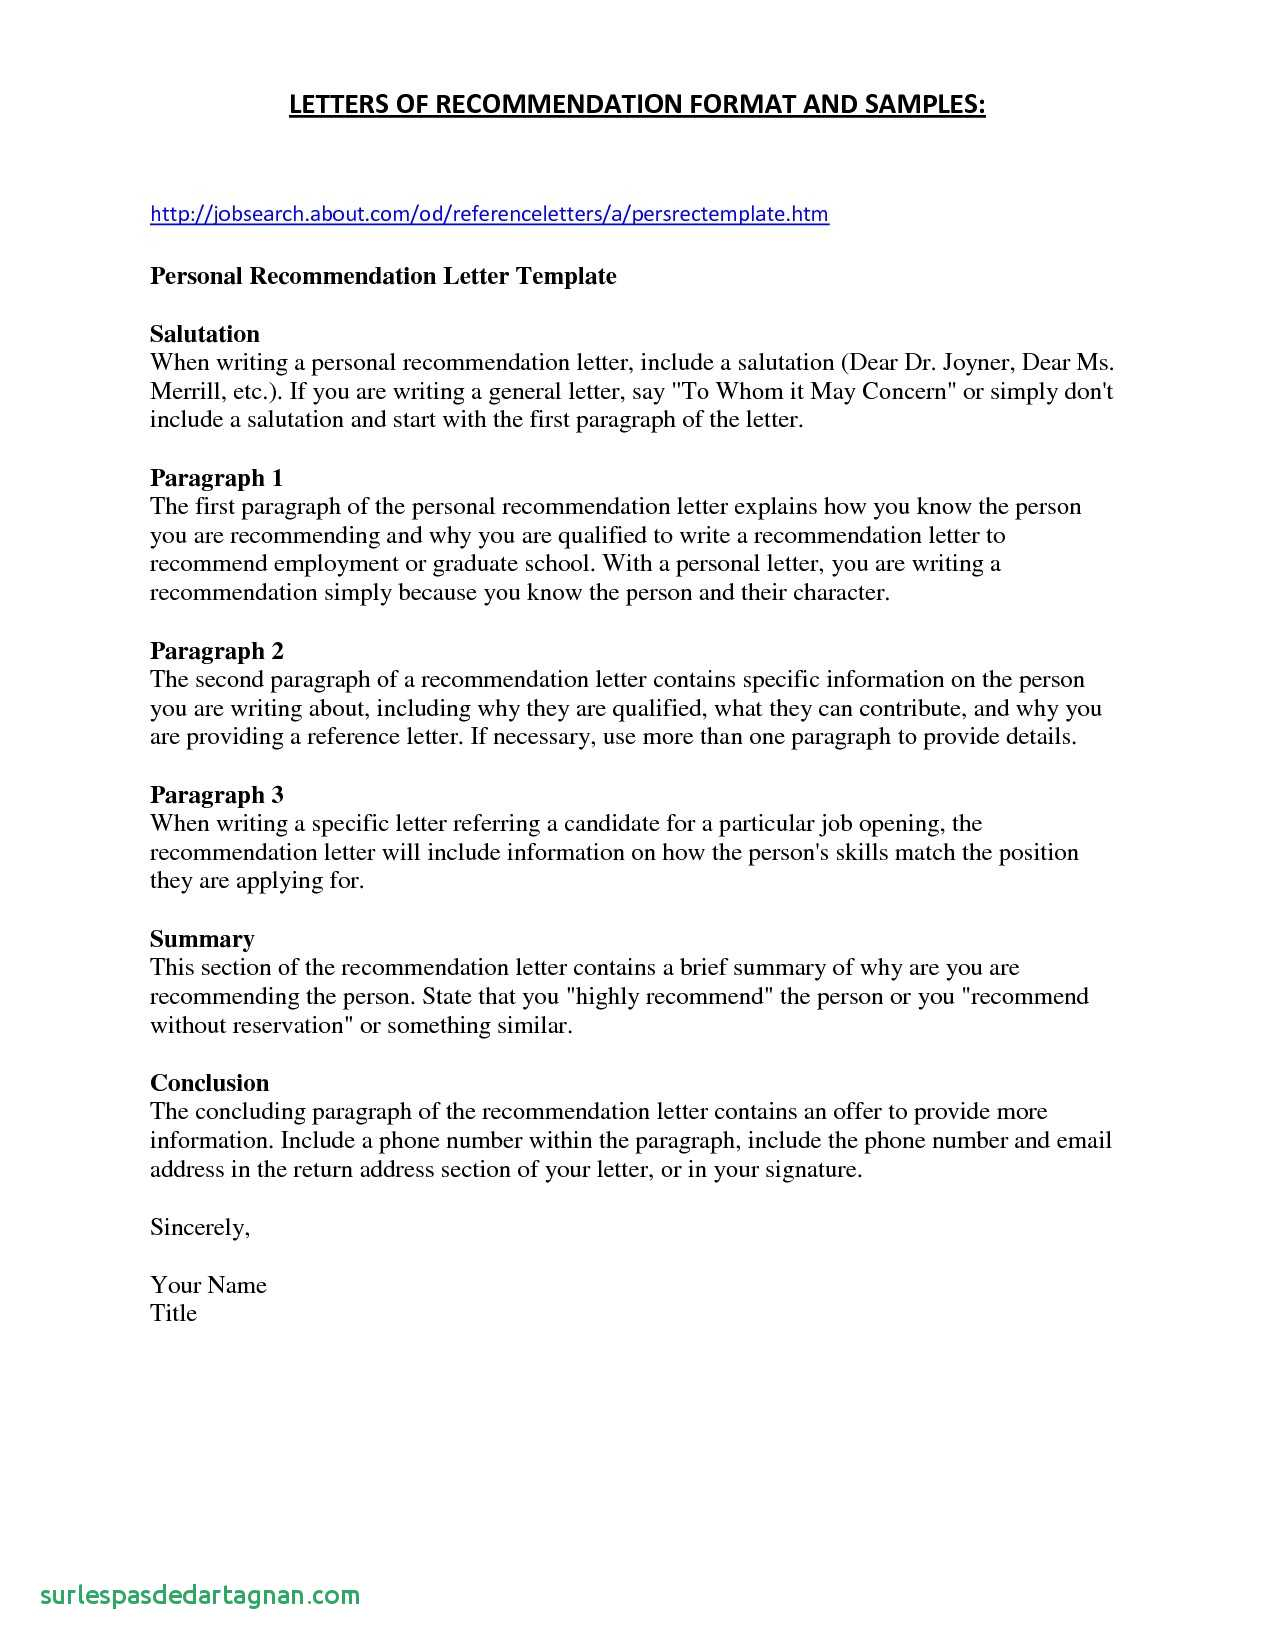 personal recommendation letter template collection letter templates